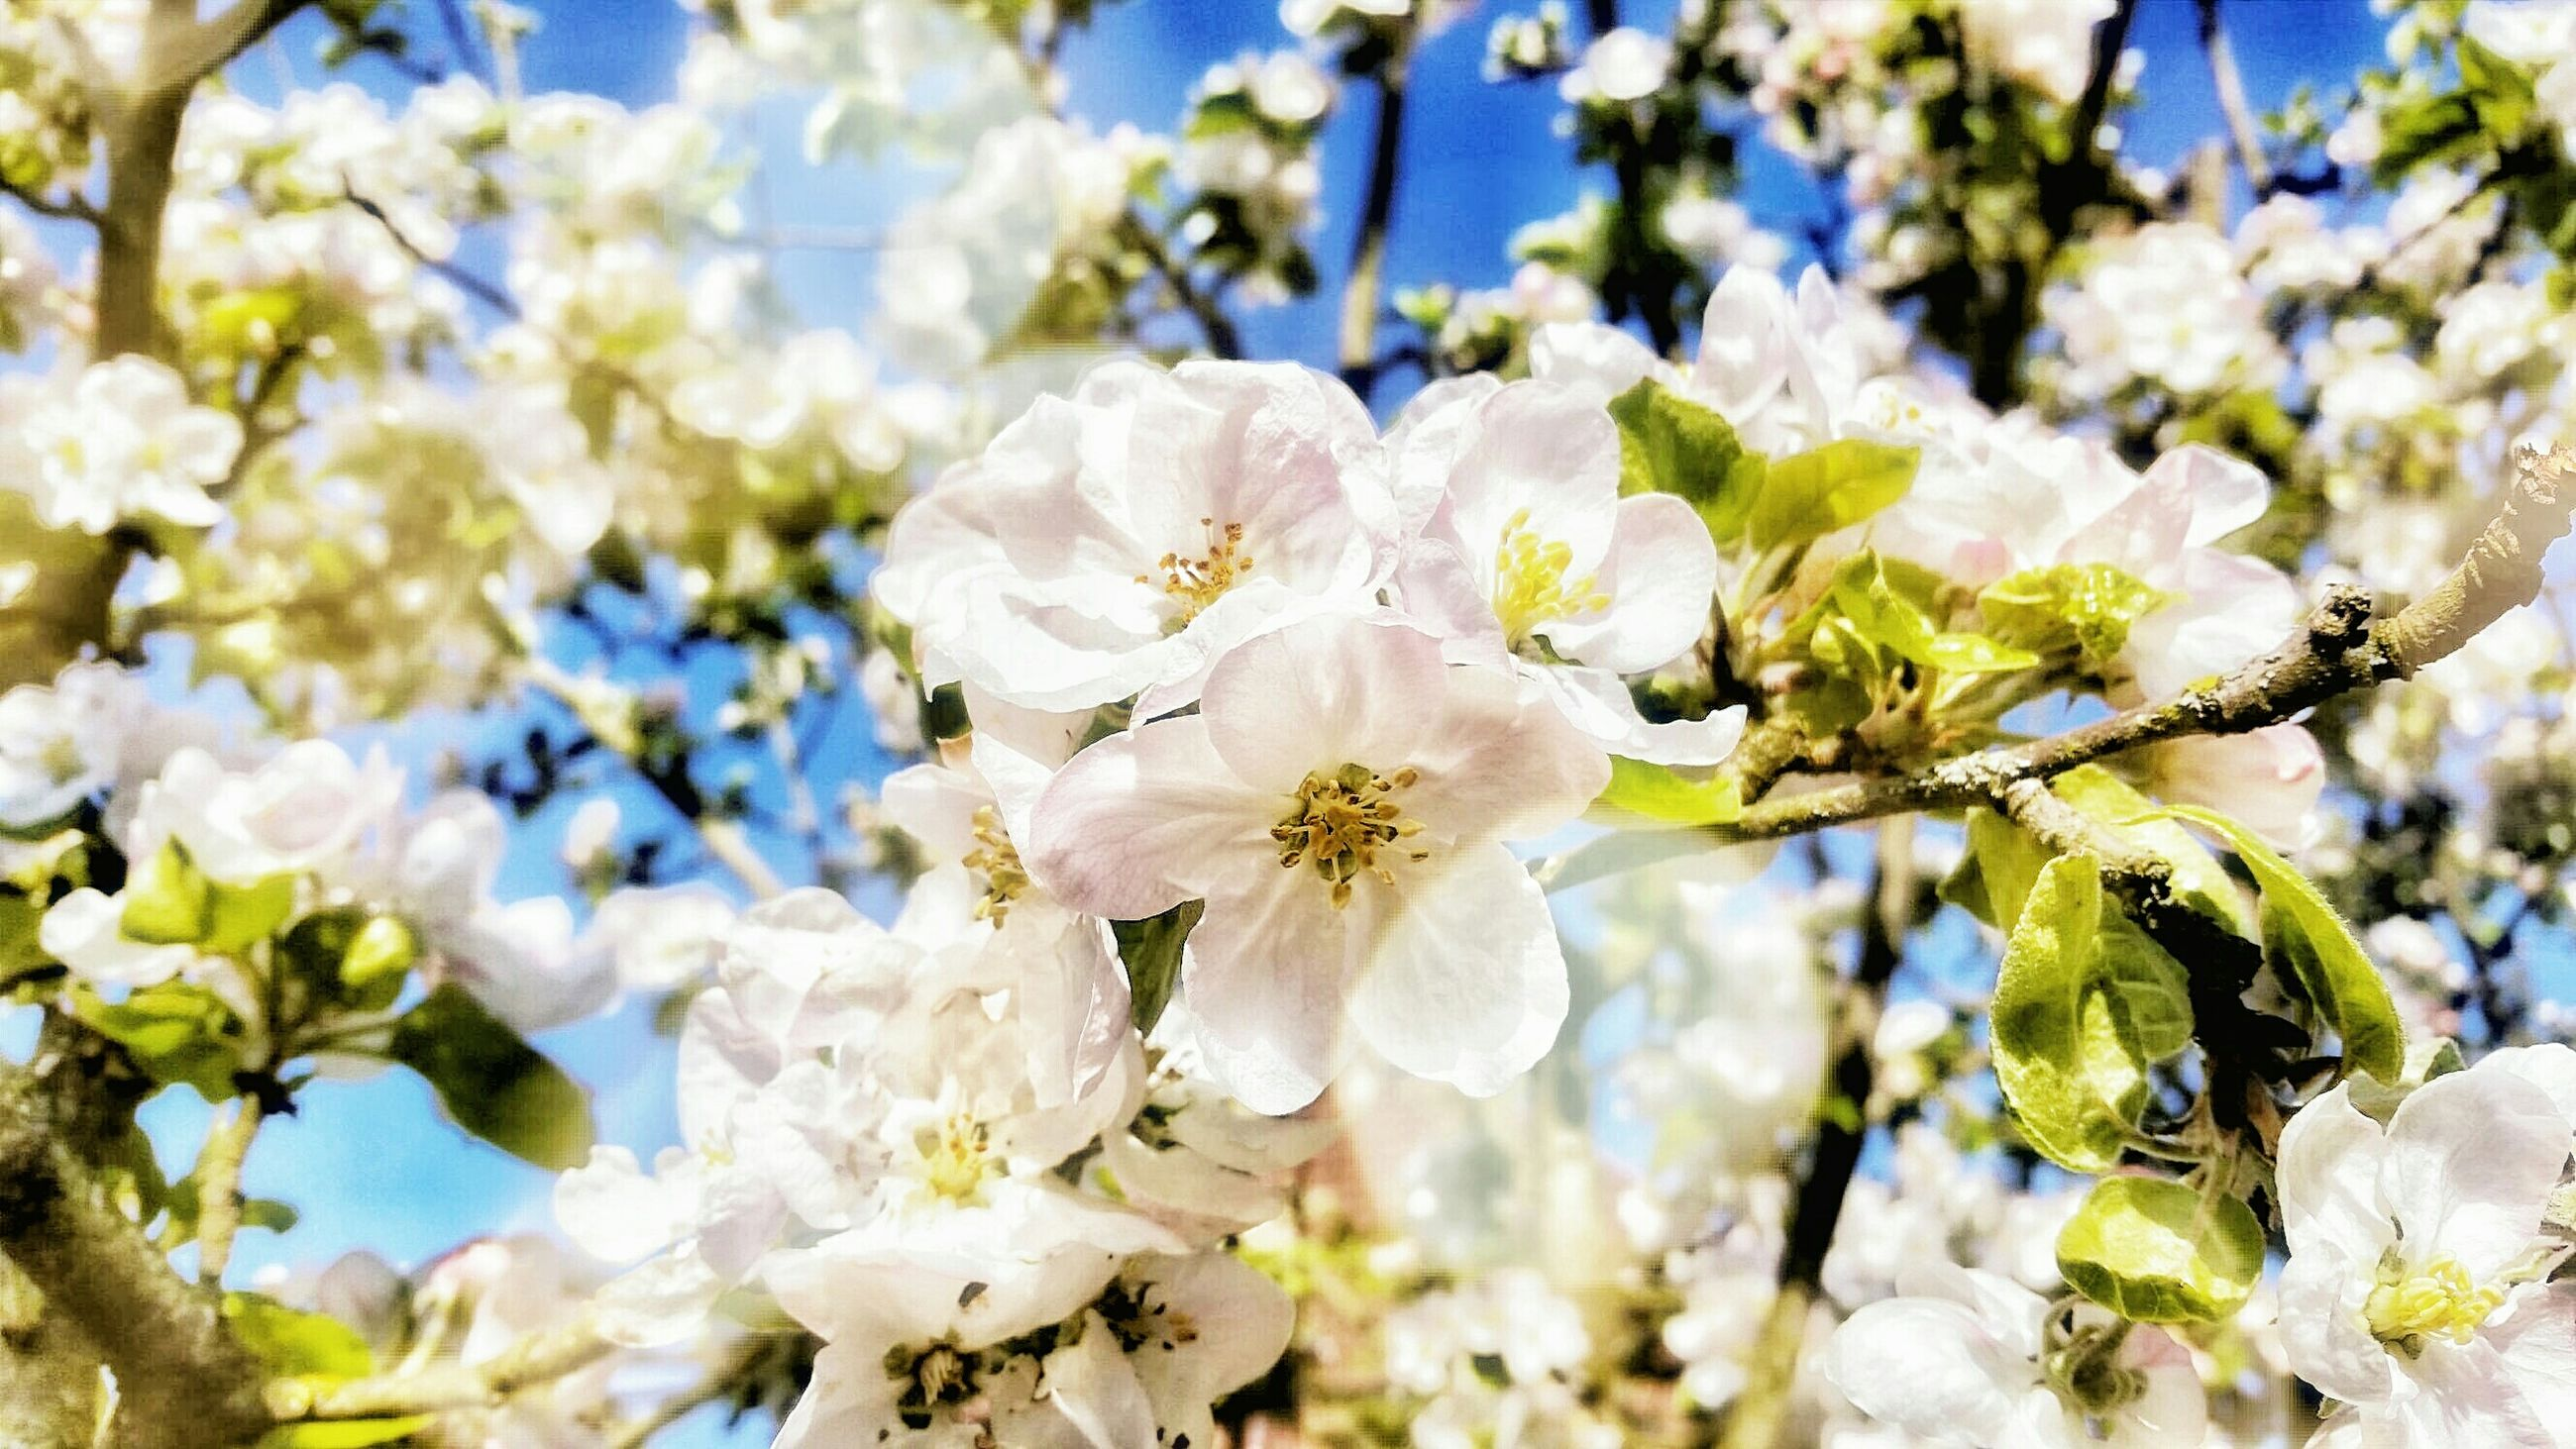 flower, freshness, fragility, growth, petal, white color, beauty in nature, focus on foreground, close-up, flower head, nature, blooming, blossom, cherry blossom, in bloom, tree, branch, stamen, springtime, day